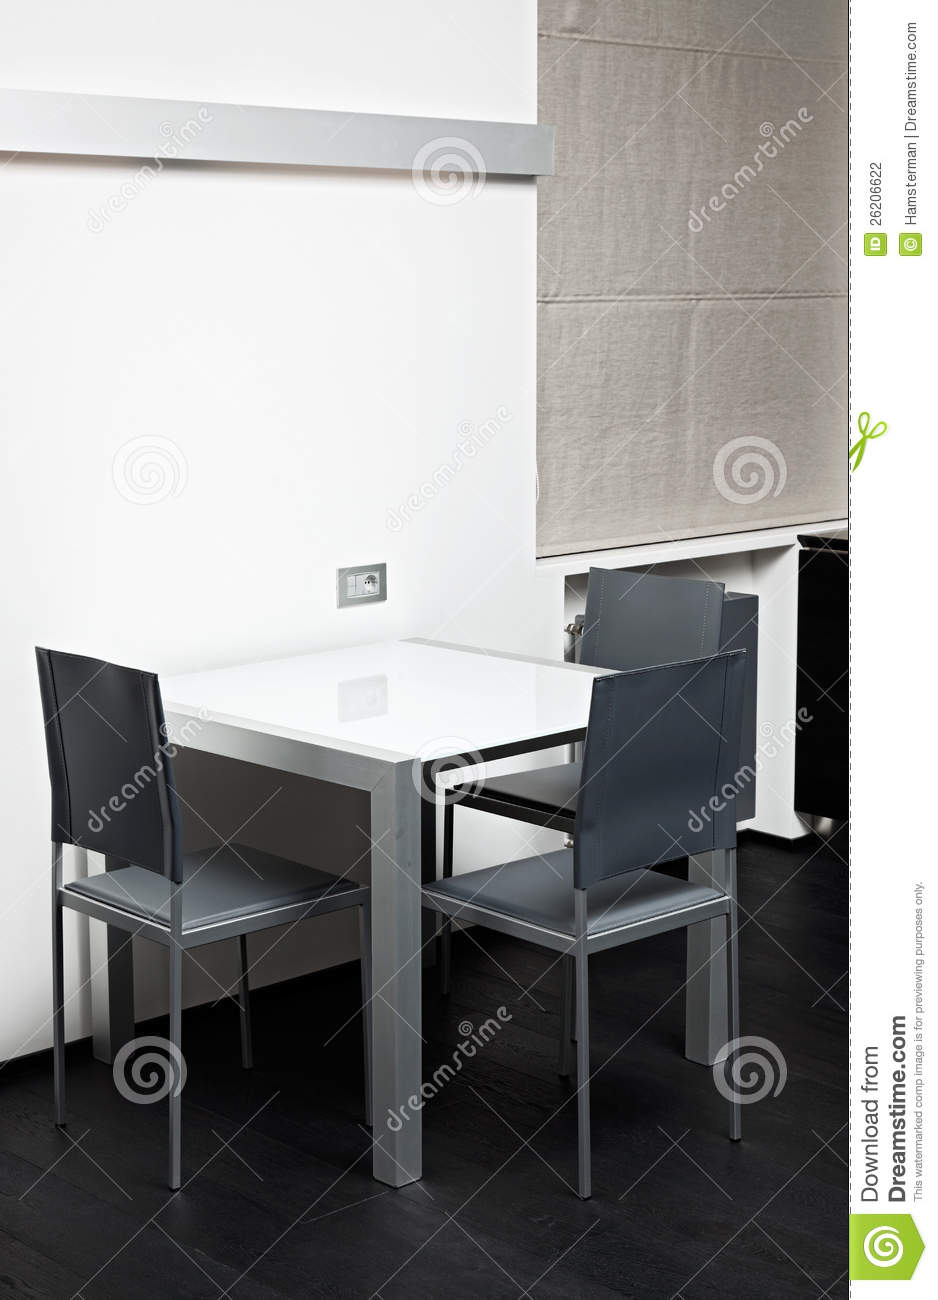 High tech dining table stock photography image 26206622 - Table basse high tech ...